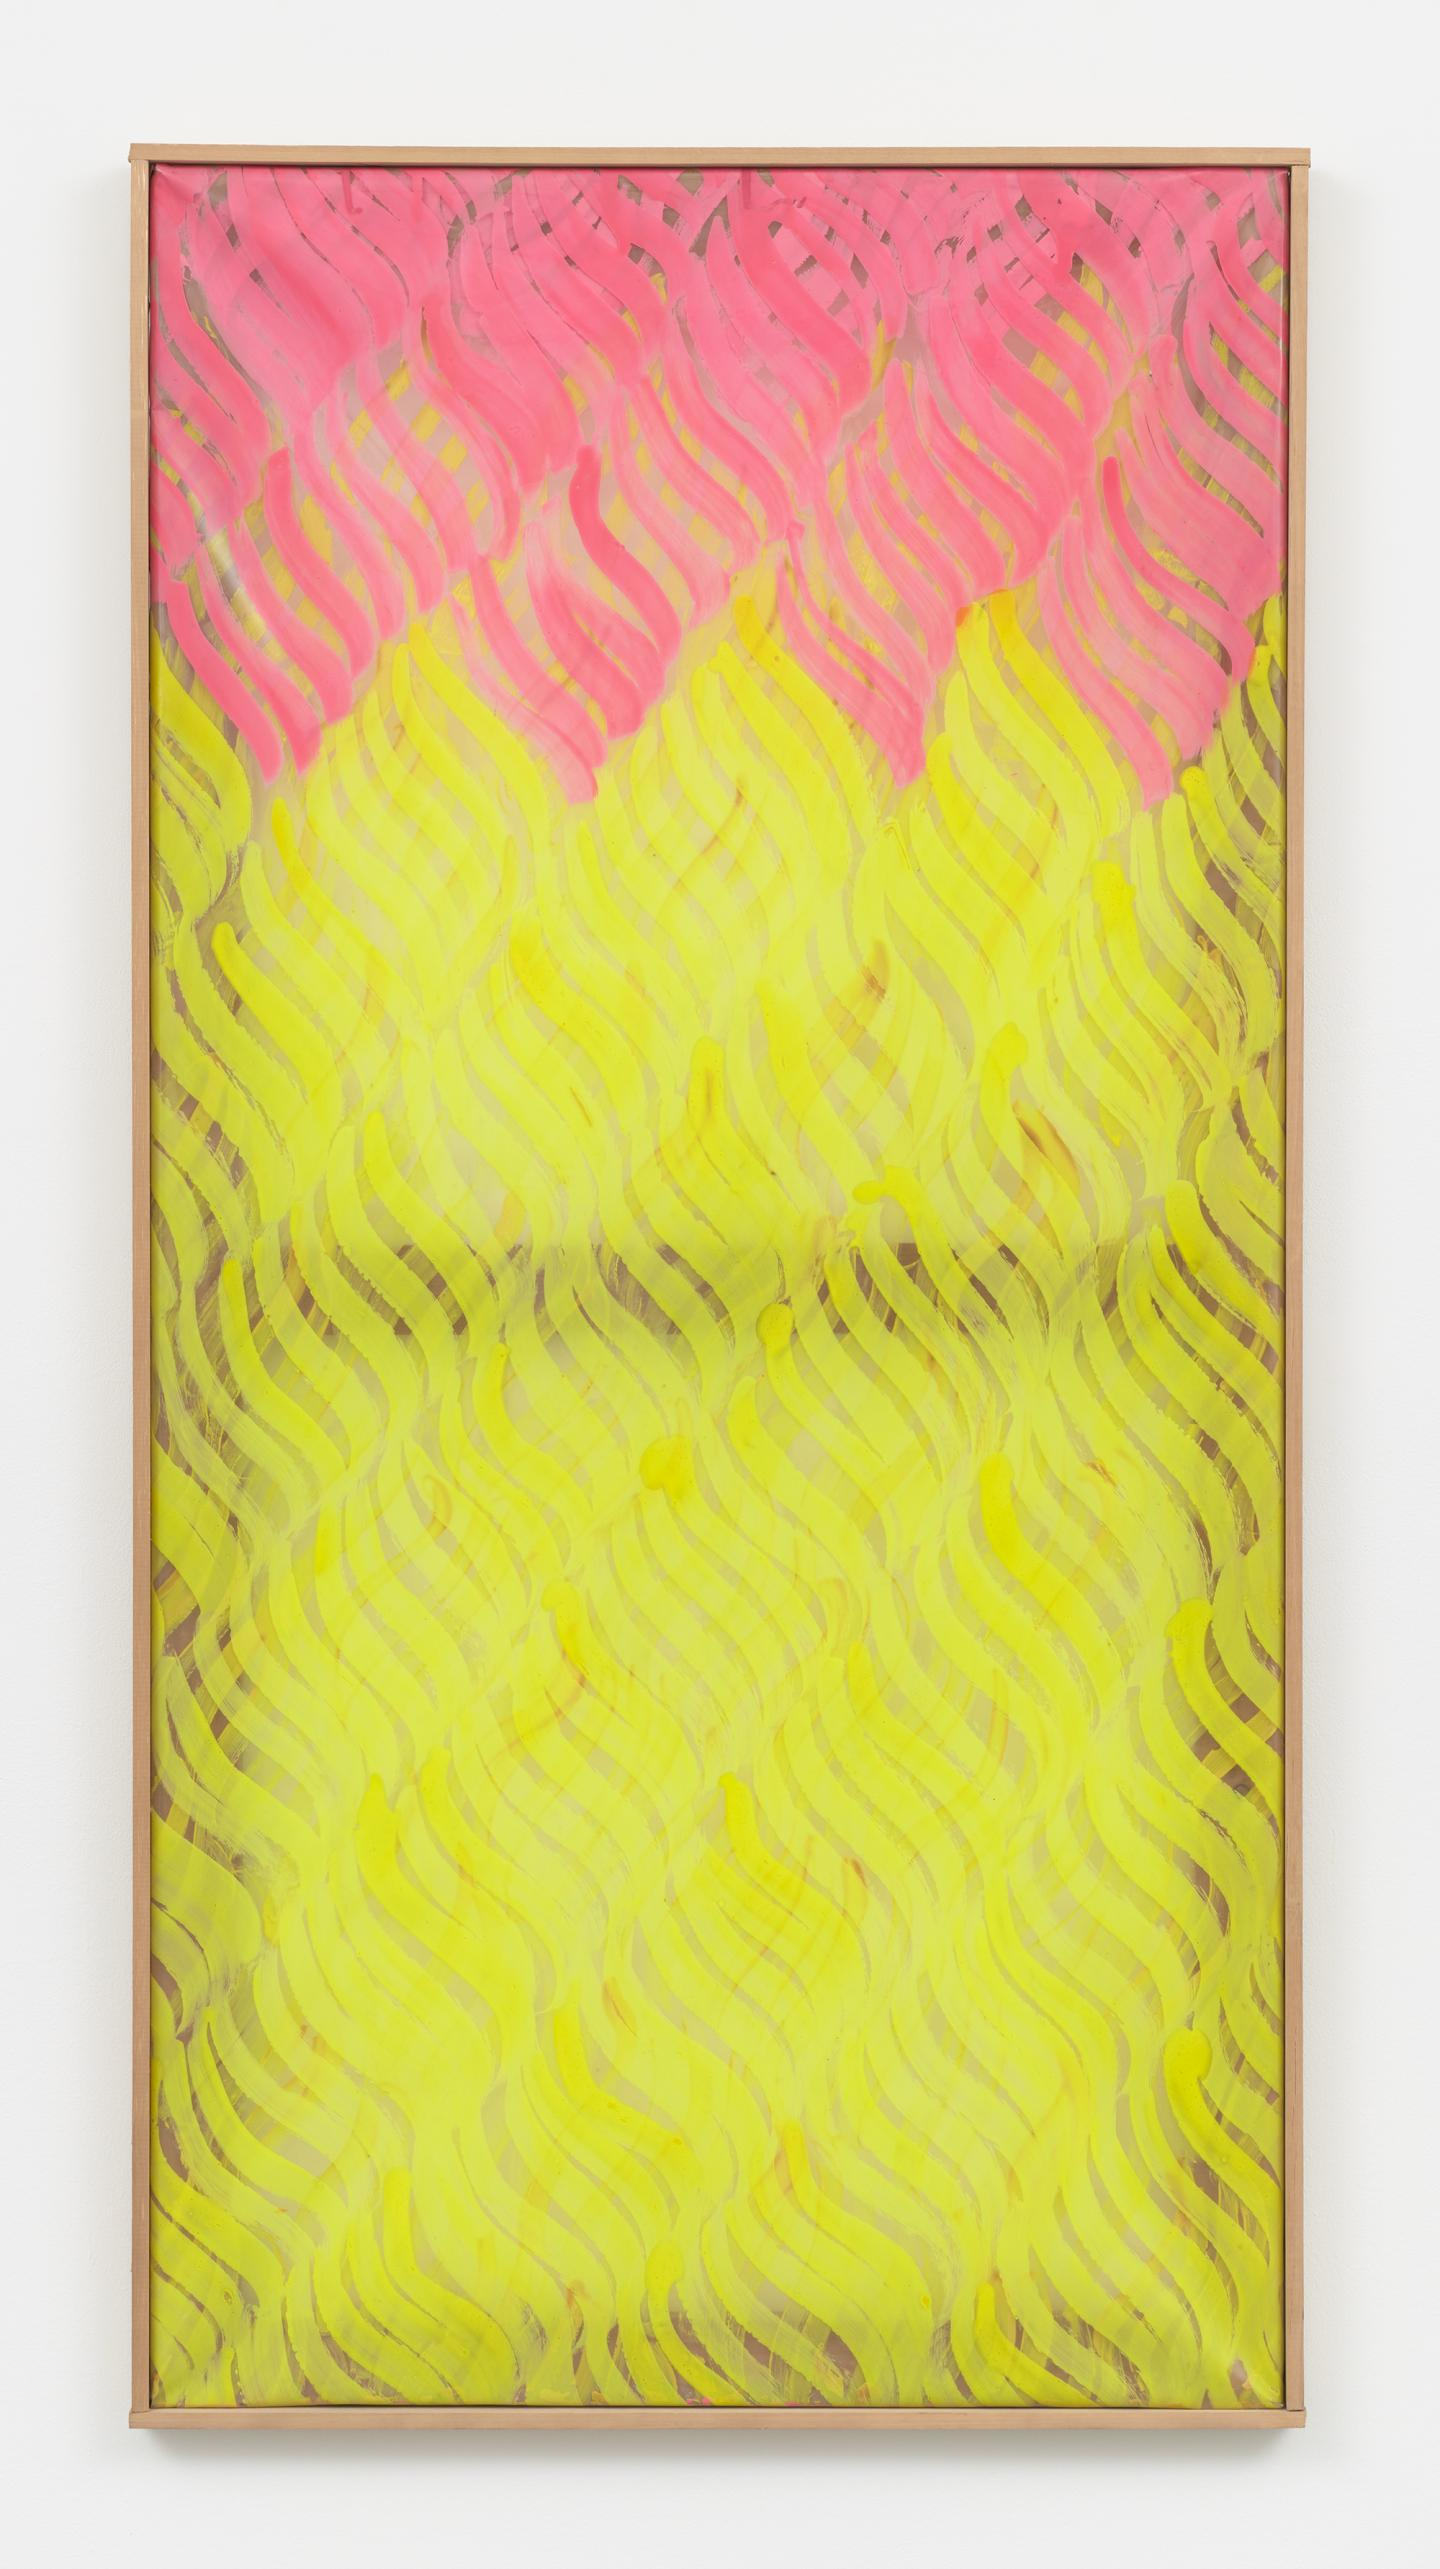 CarlaAccardi,Rossogiallo,1968, Acrylic on sicofoil, 138 × 69cm. Courtesy: the artist, Andrew Kreps Gallery and Bortolami, New York.